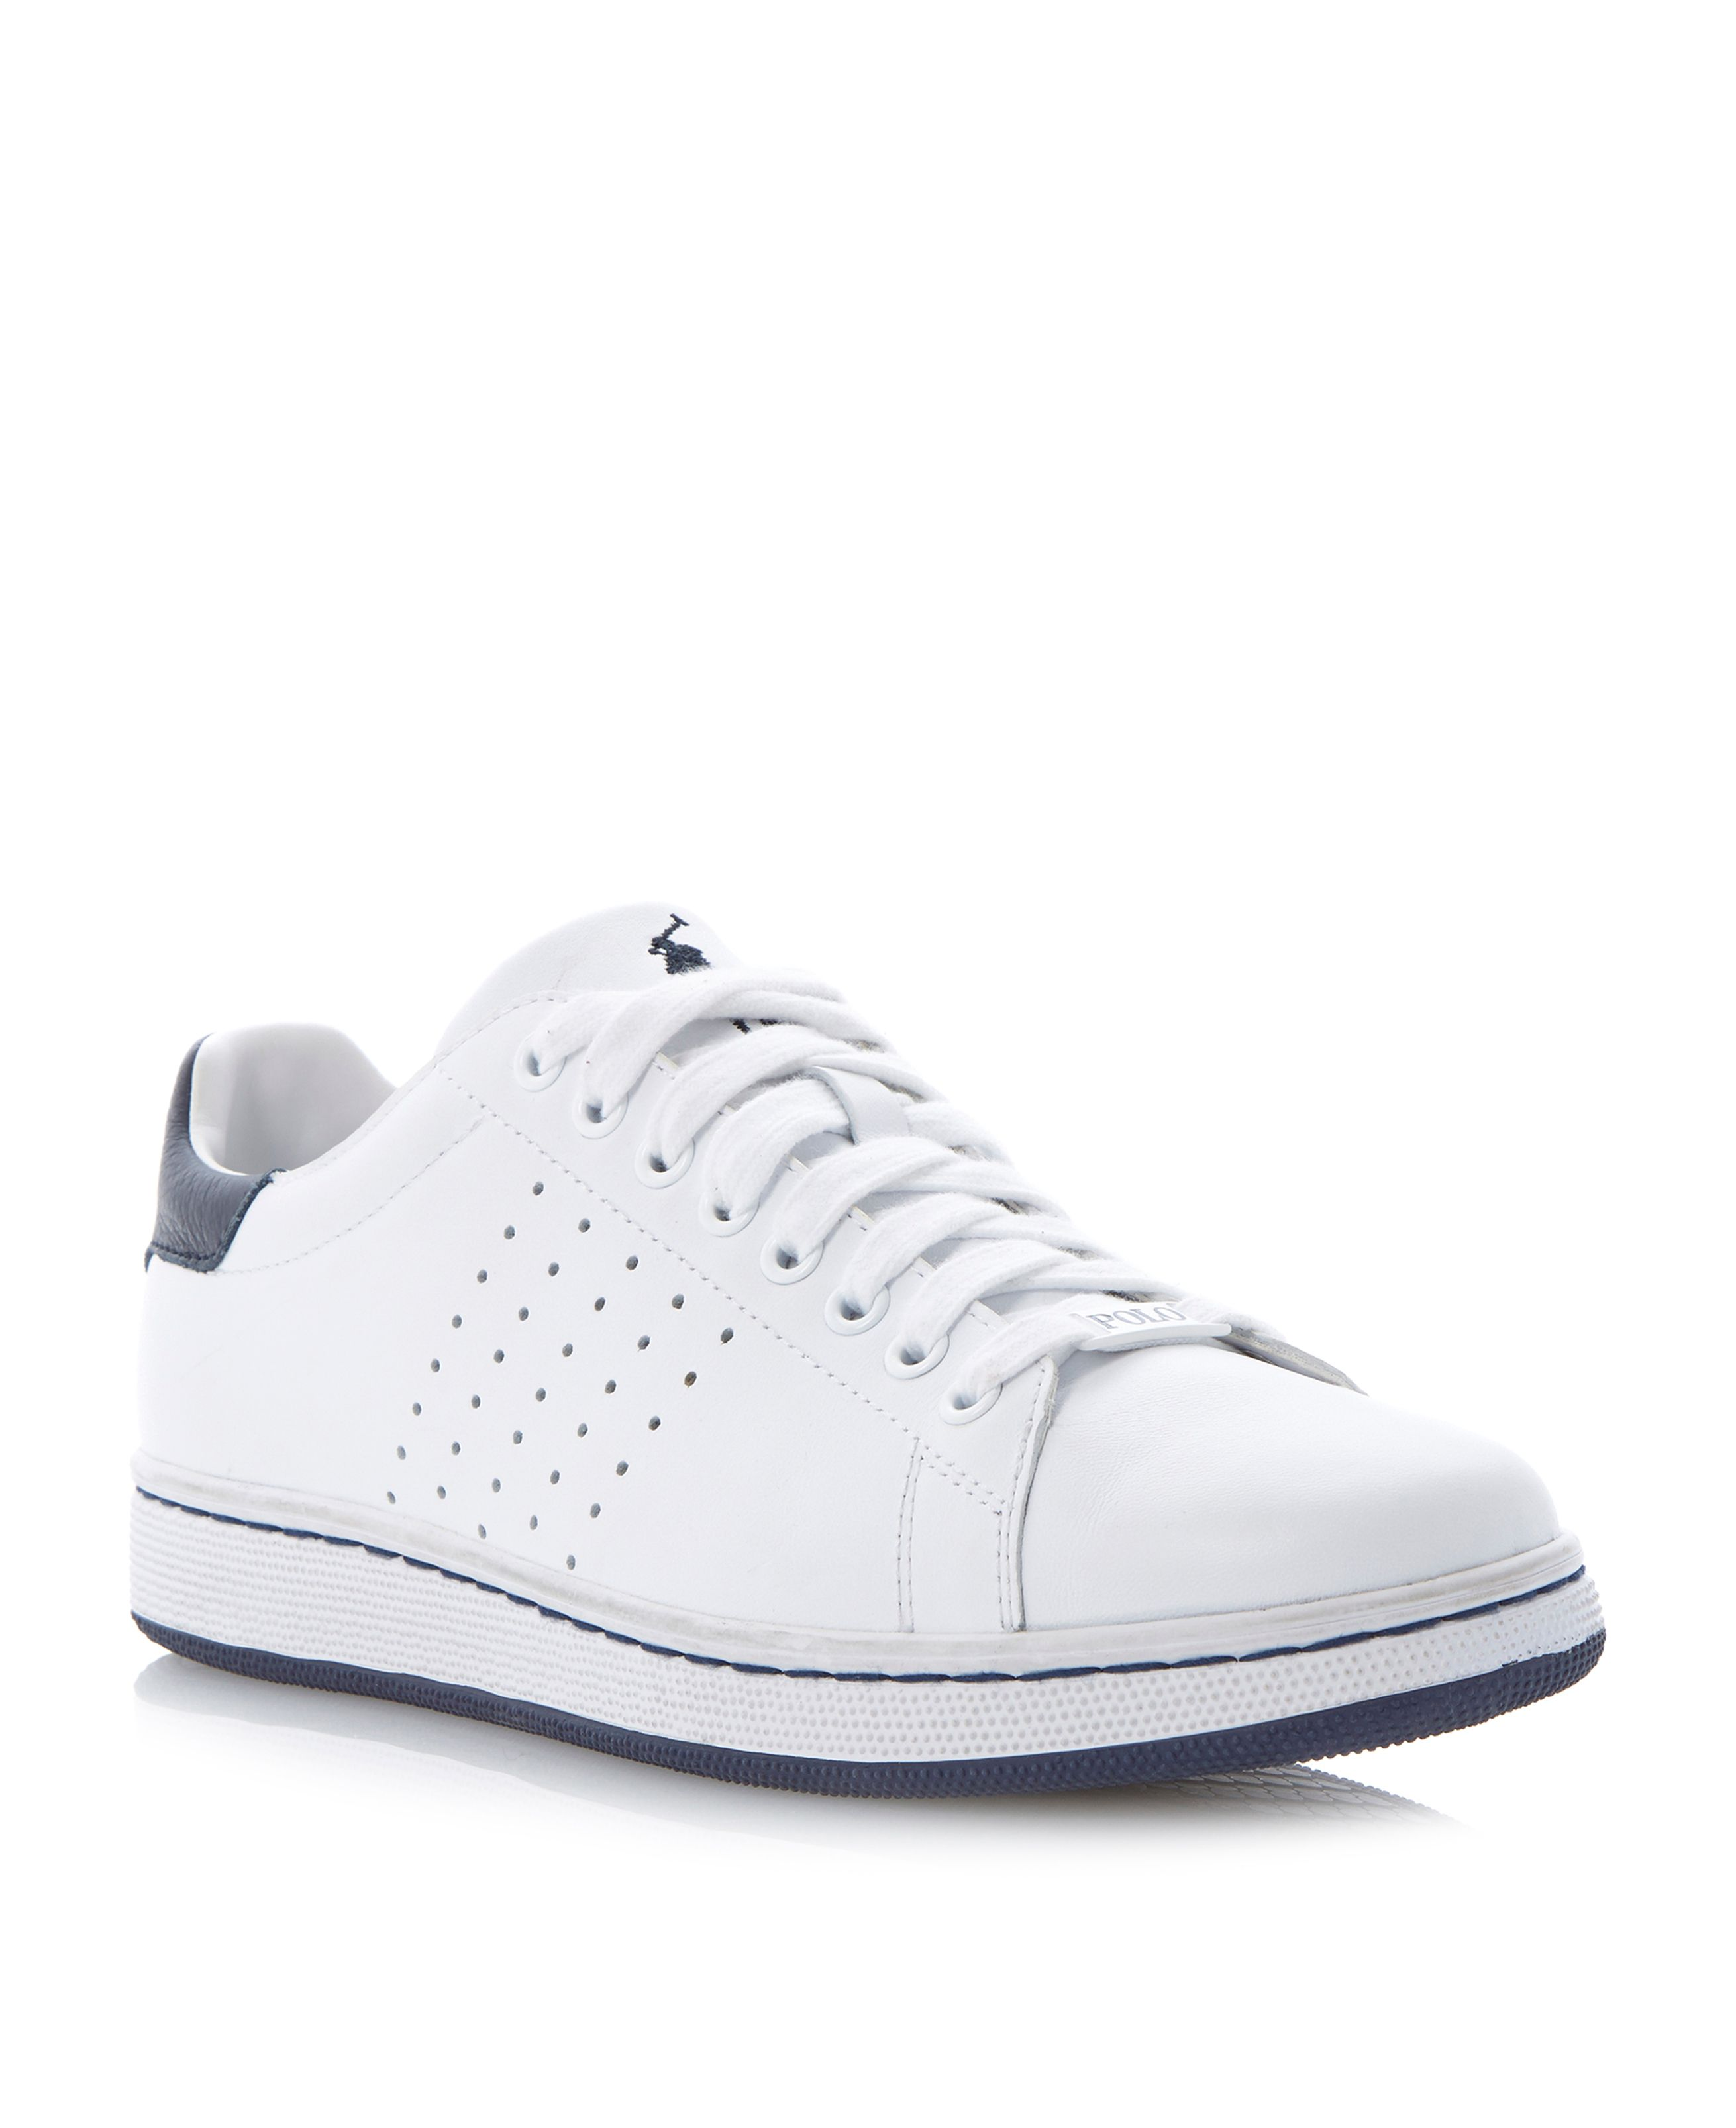 Wilton perforated side trainers